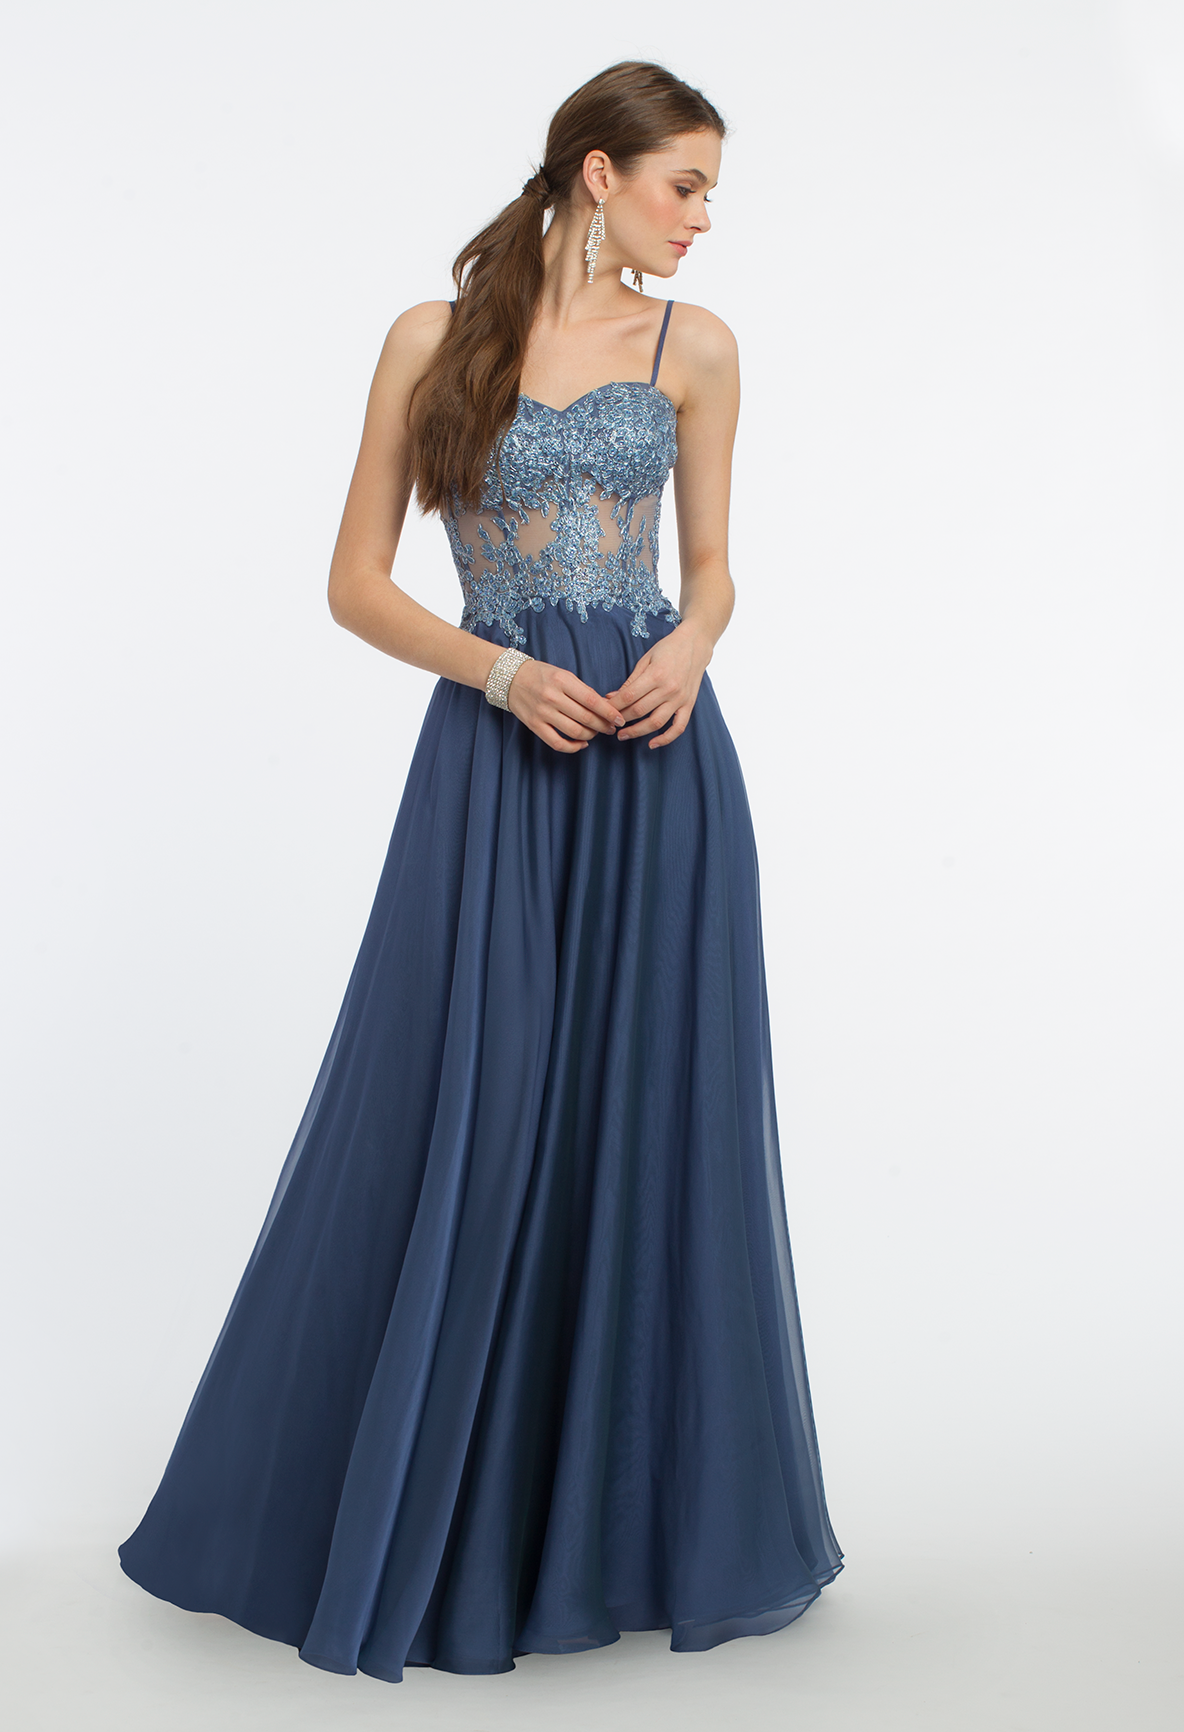 Step Into A Dream Like Atmosphere In This Ethereal Evening Gown The Spaghetti Straps Molded Cups I Evening Dress Fashion Chic Cocktail Dress Gorgeous Dresses [ 1732 x 1184 Pixel ]